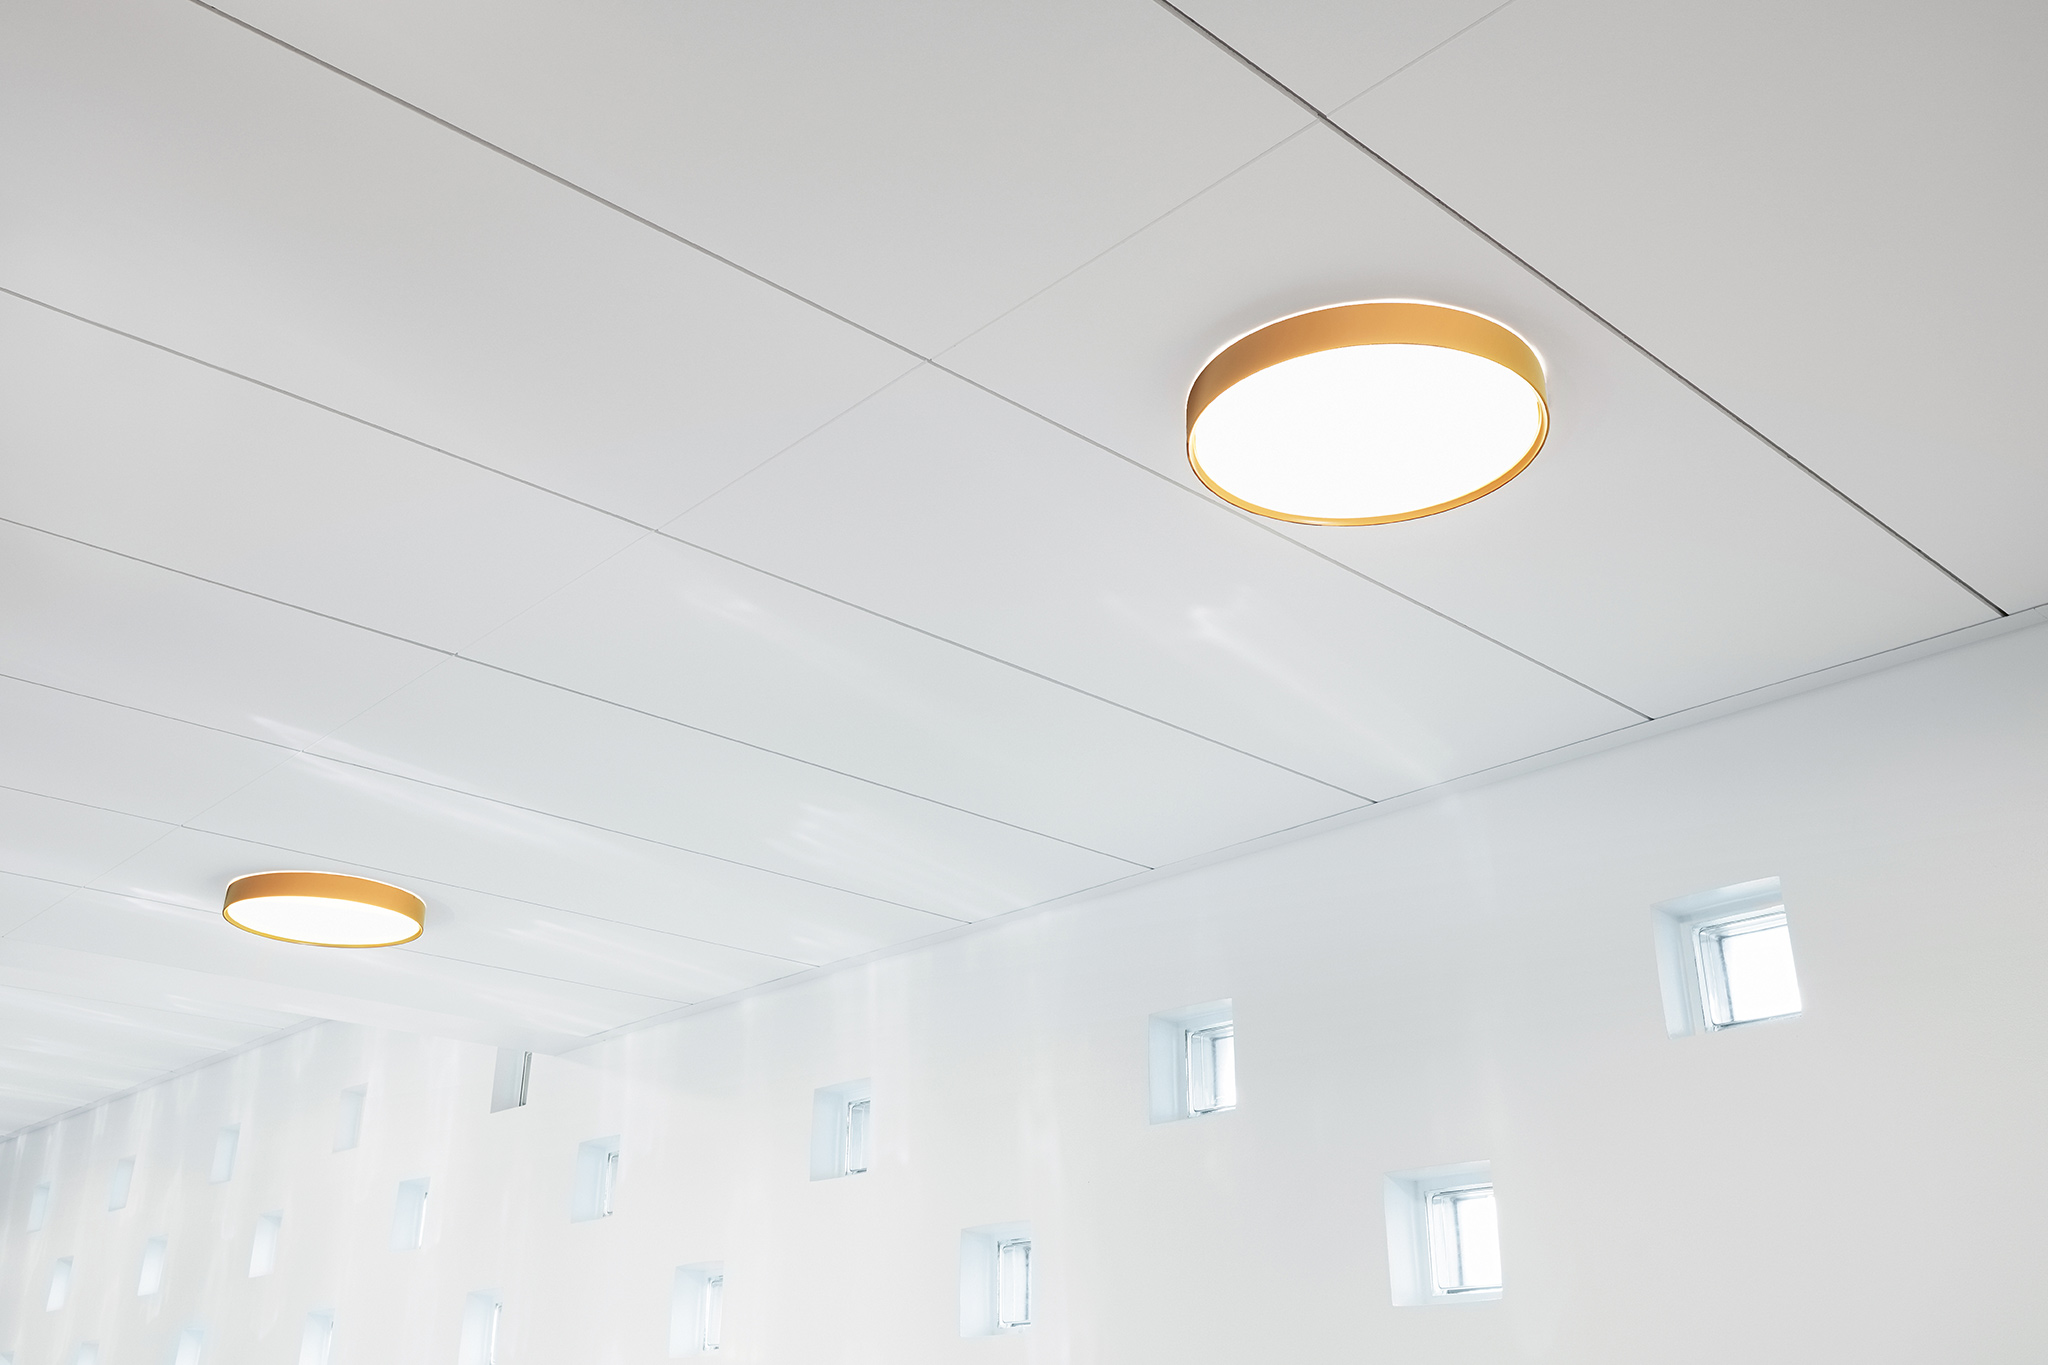 Lightscapes - lighting design for Glostrup Psychiatry